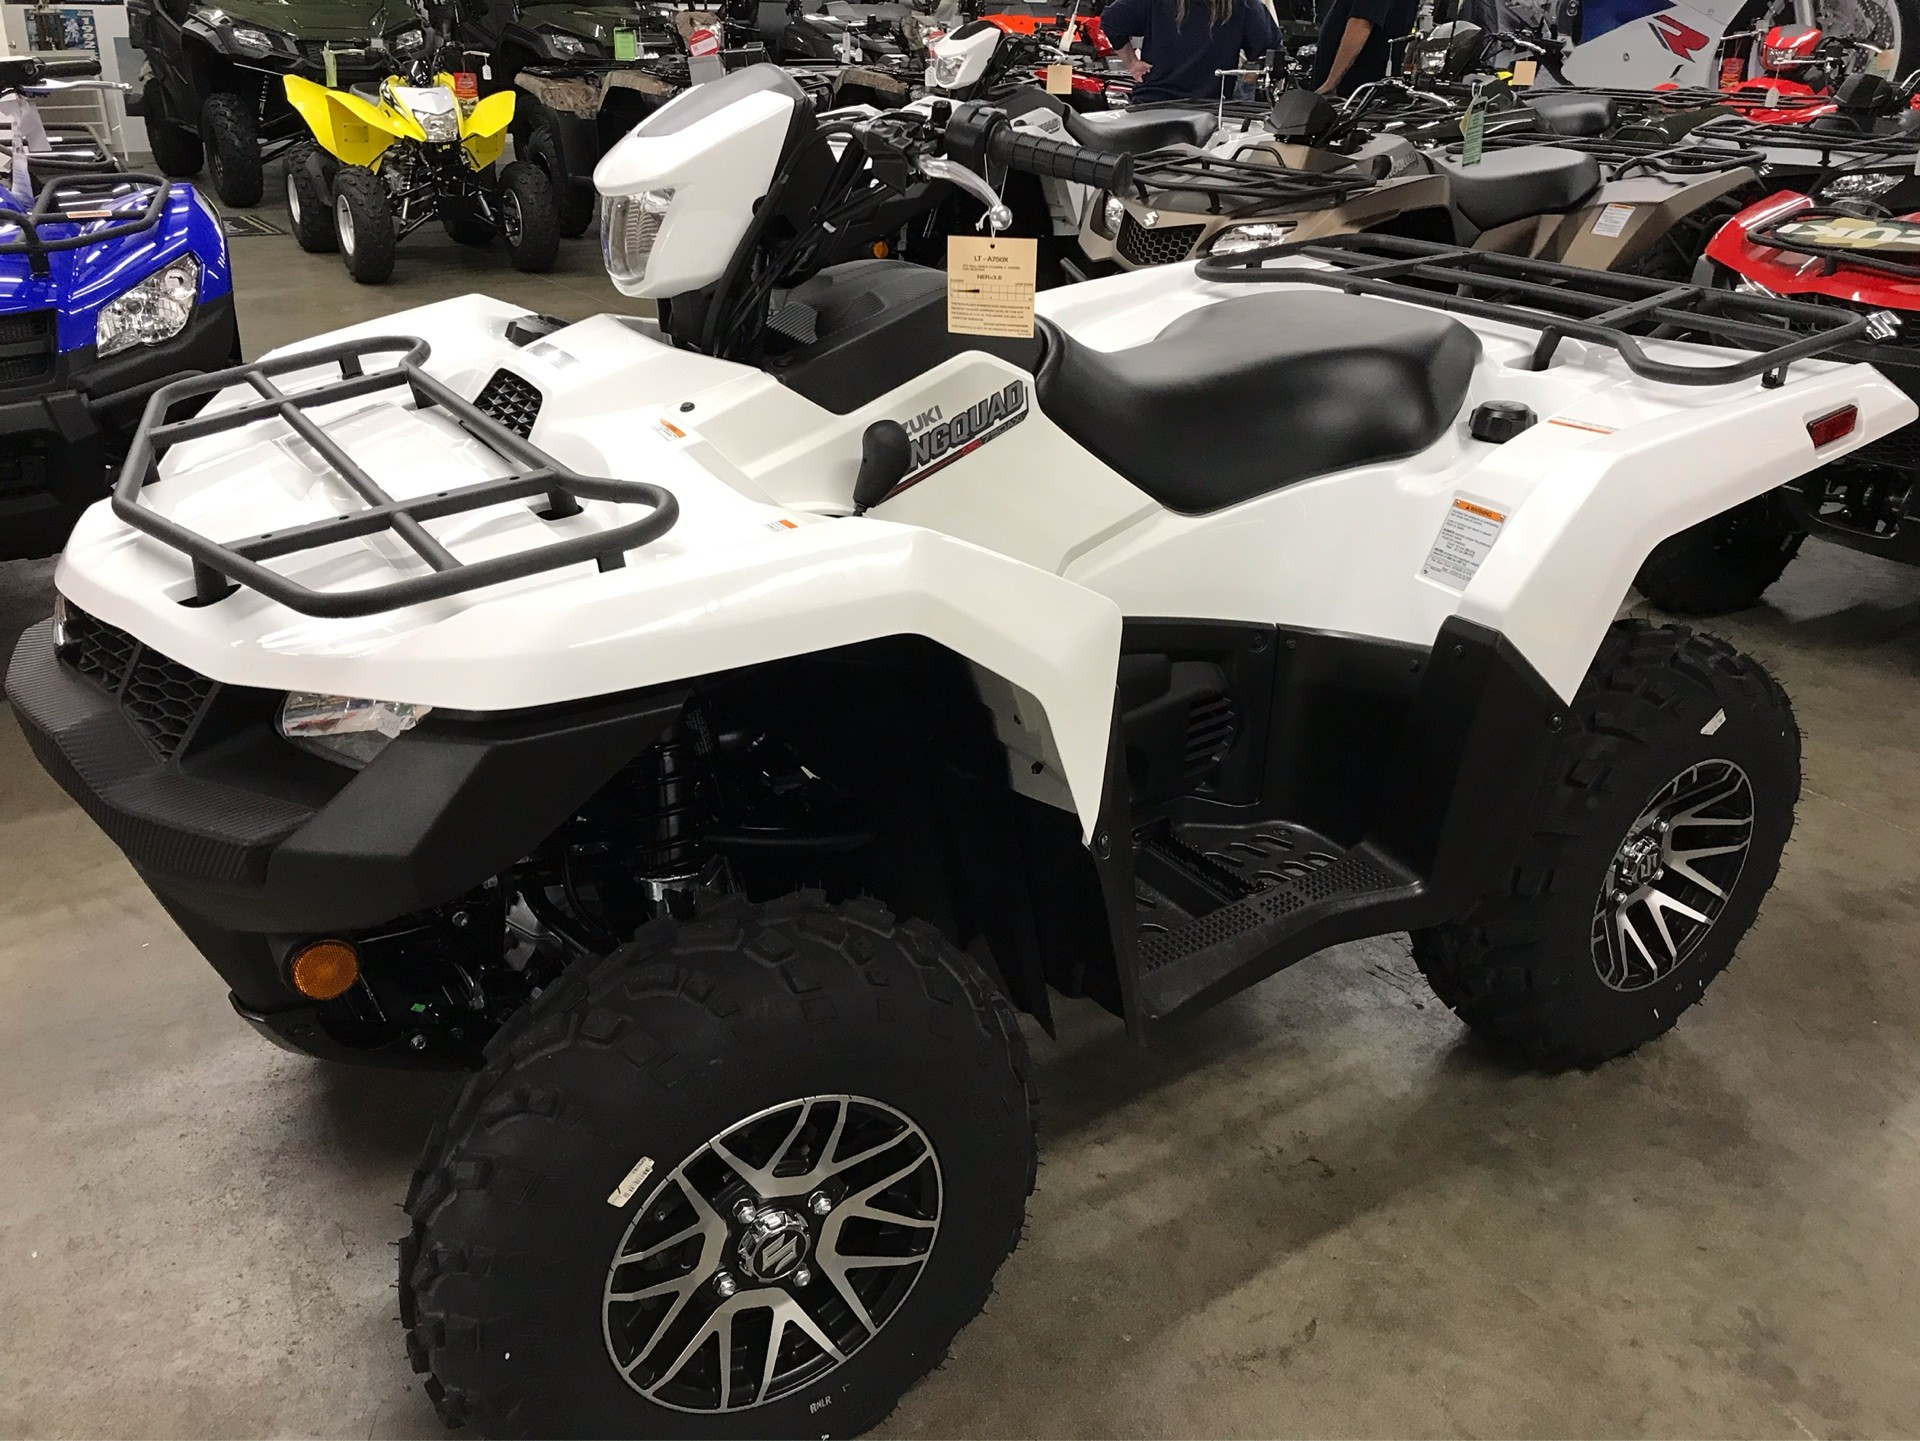 2020 Suzuki KingQuad 750AXi Power Steering SE in Sanford, North Carolina - Photo 1